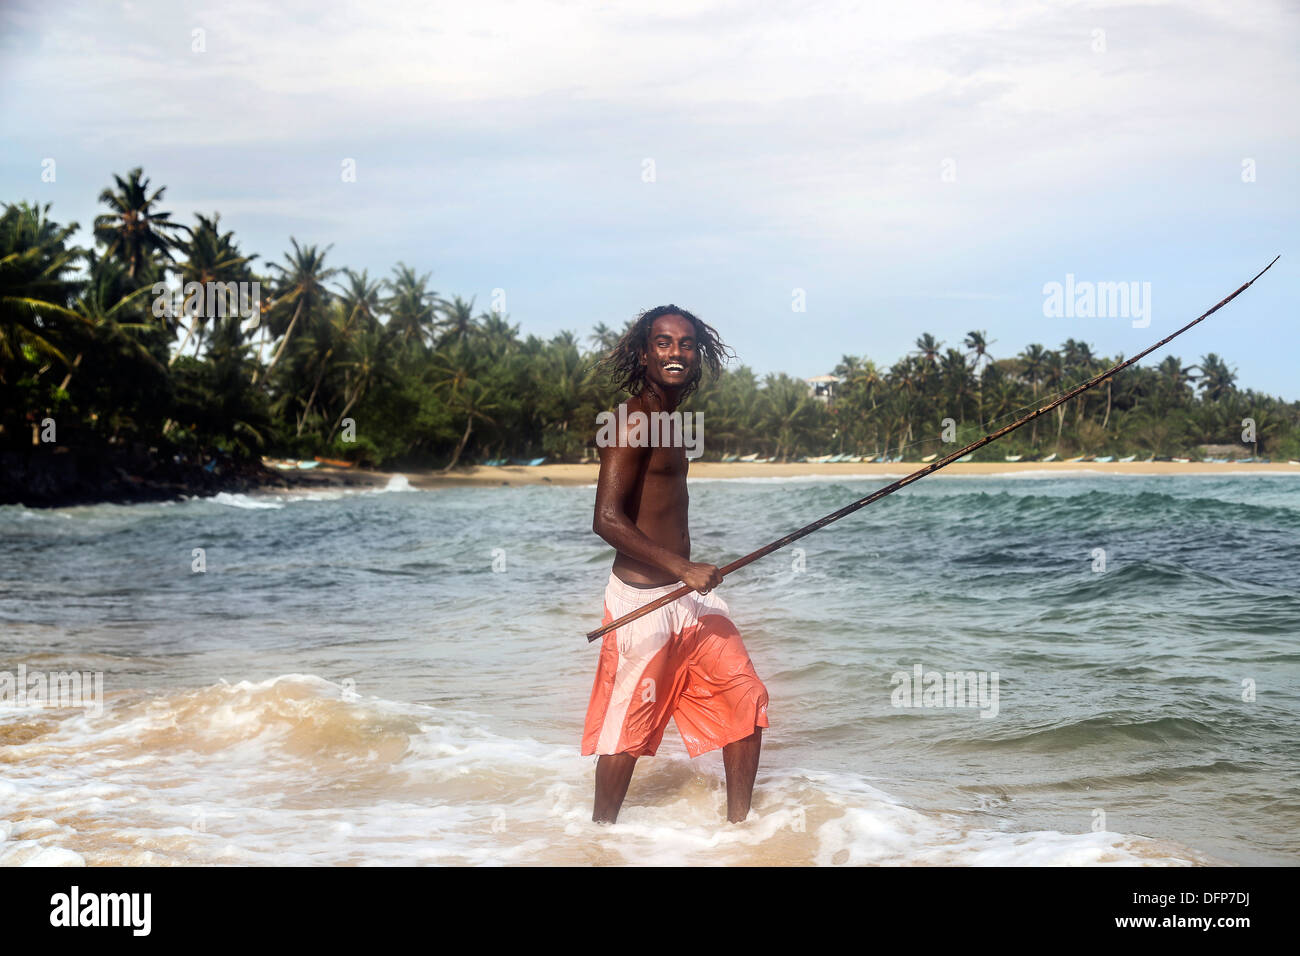 Fishman paddles with rod in sea smiling shorts - Stock Image